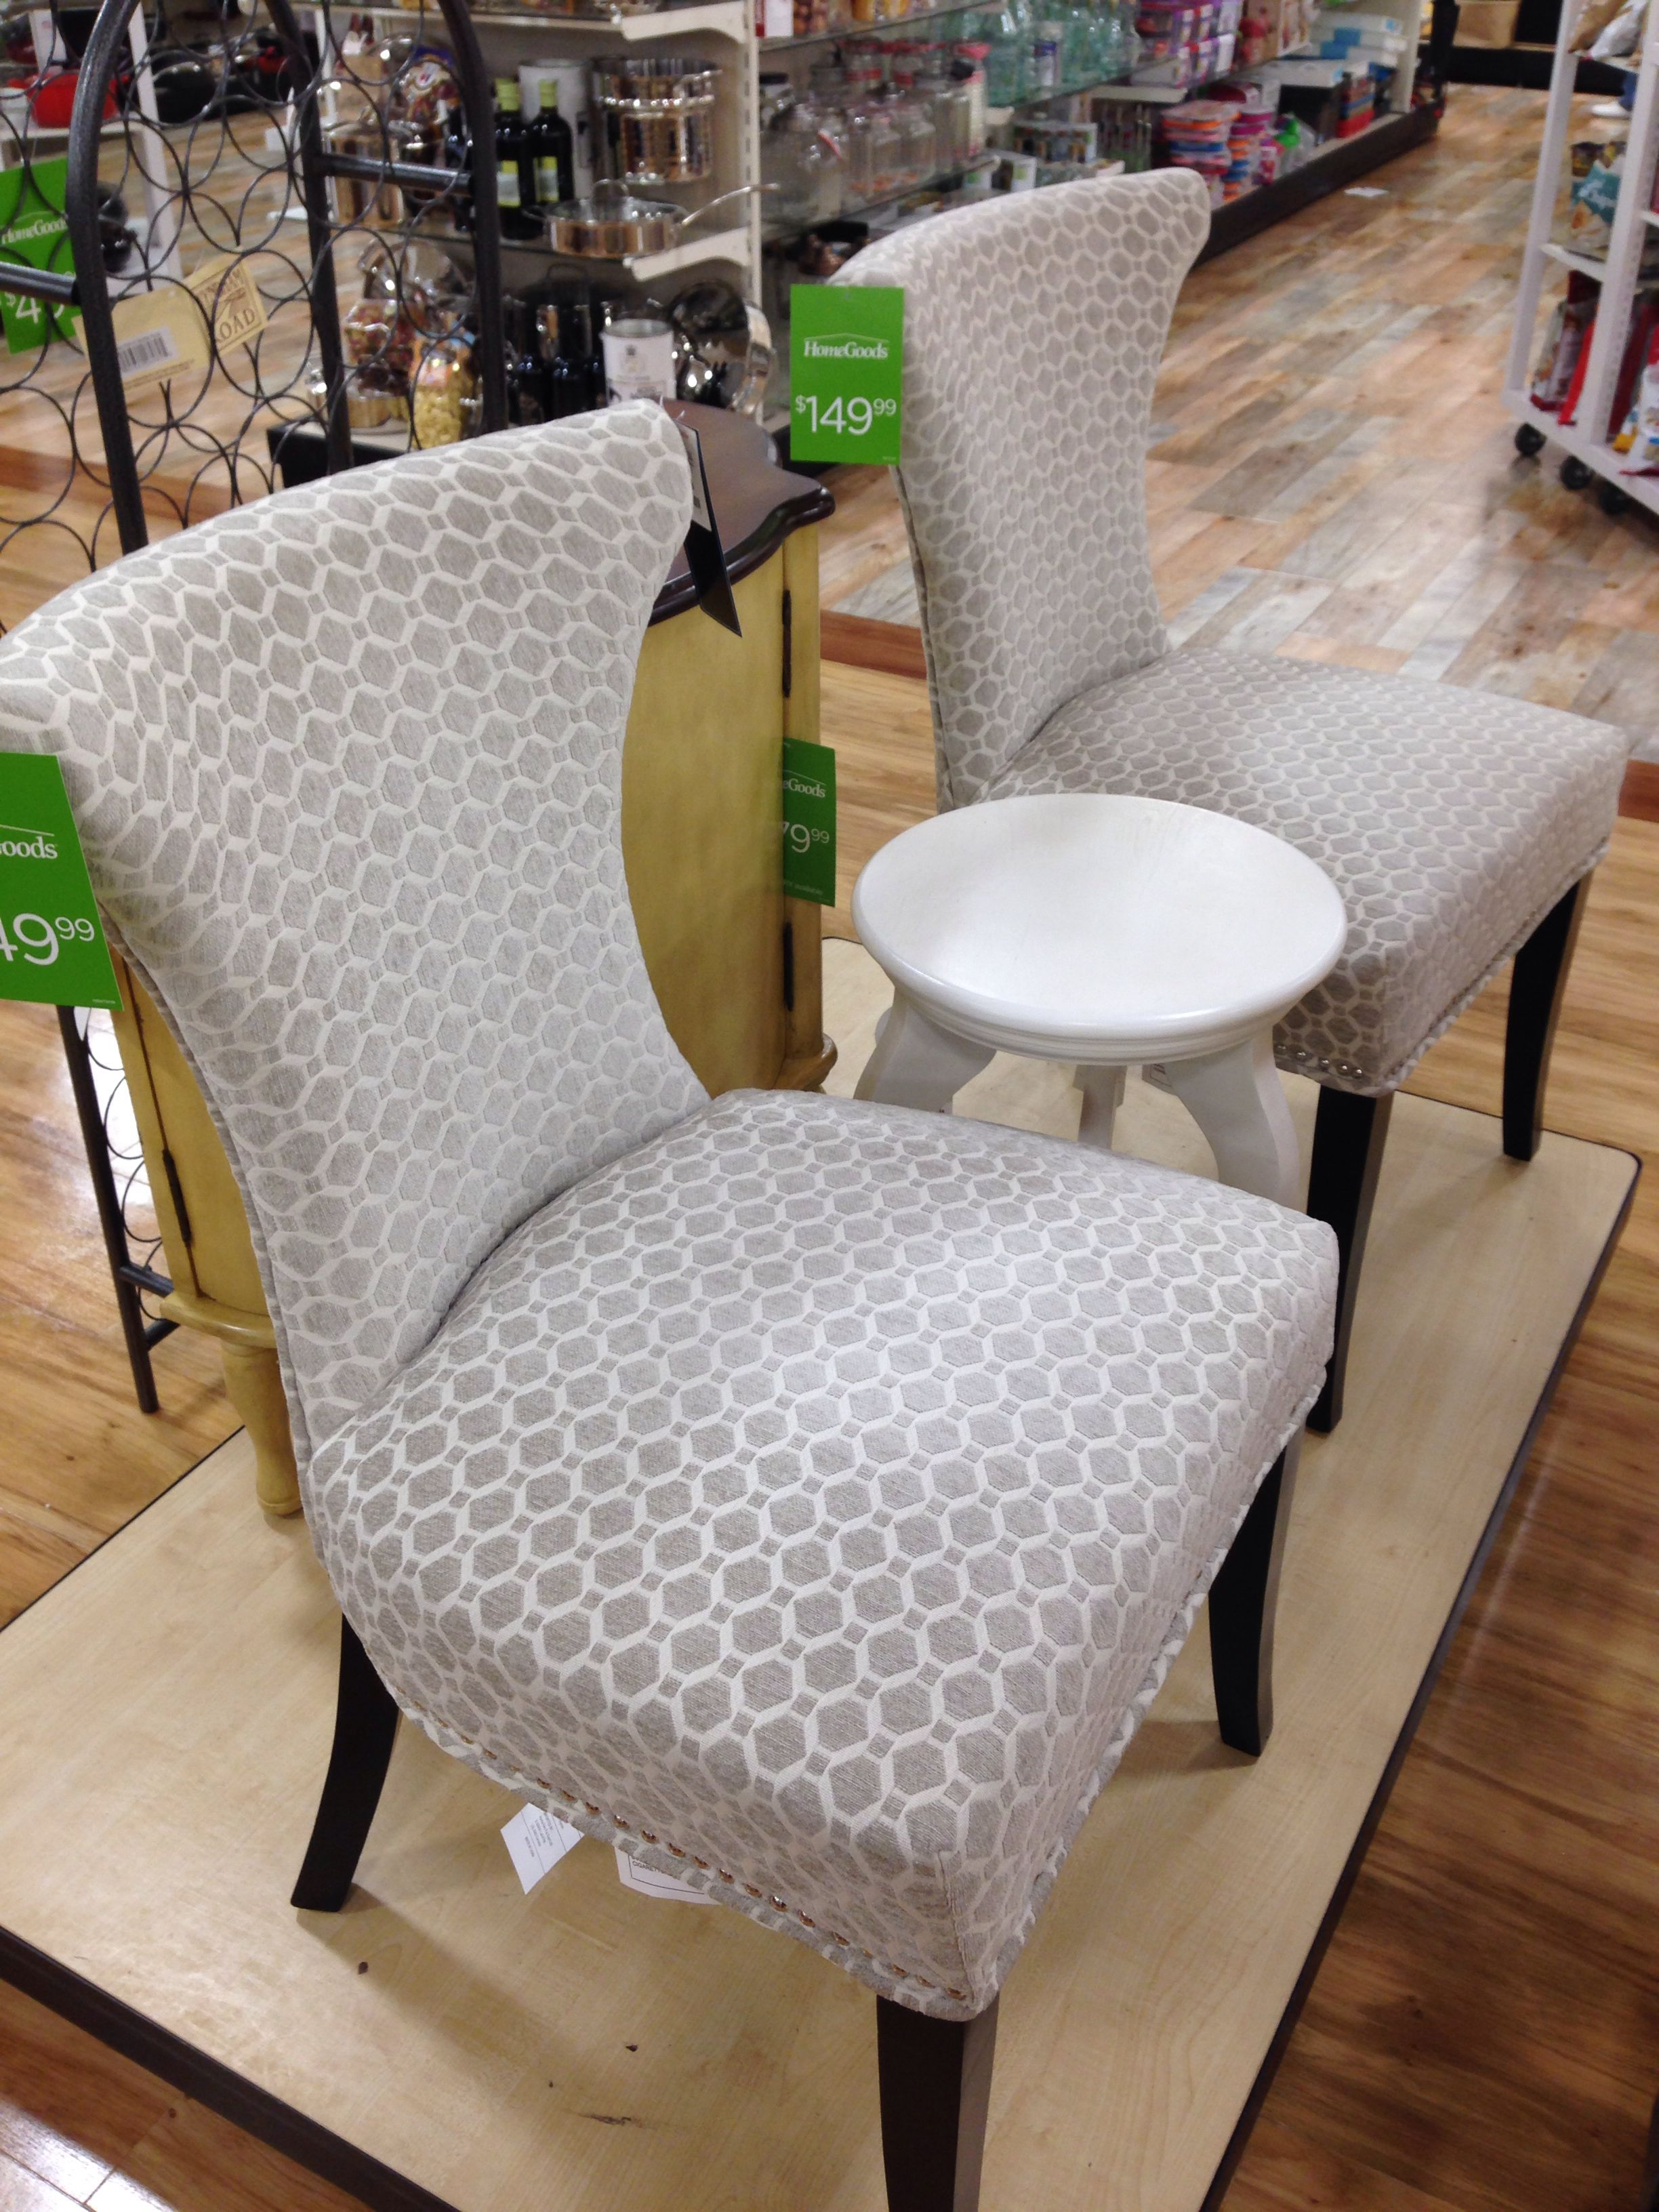 Chairs Chair Home Decor Home Goods Store